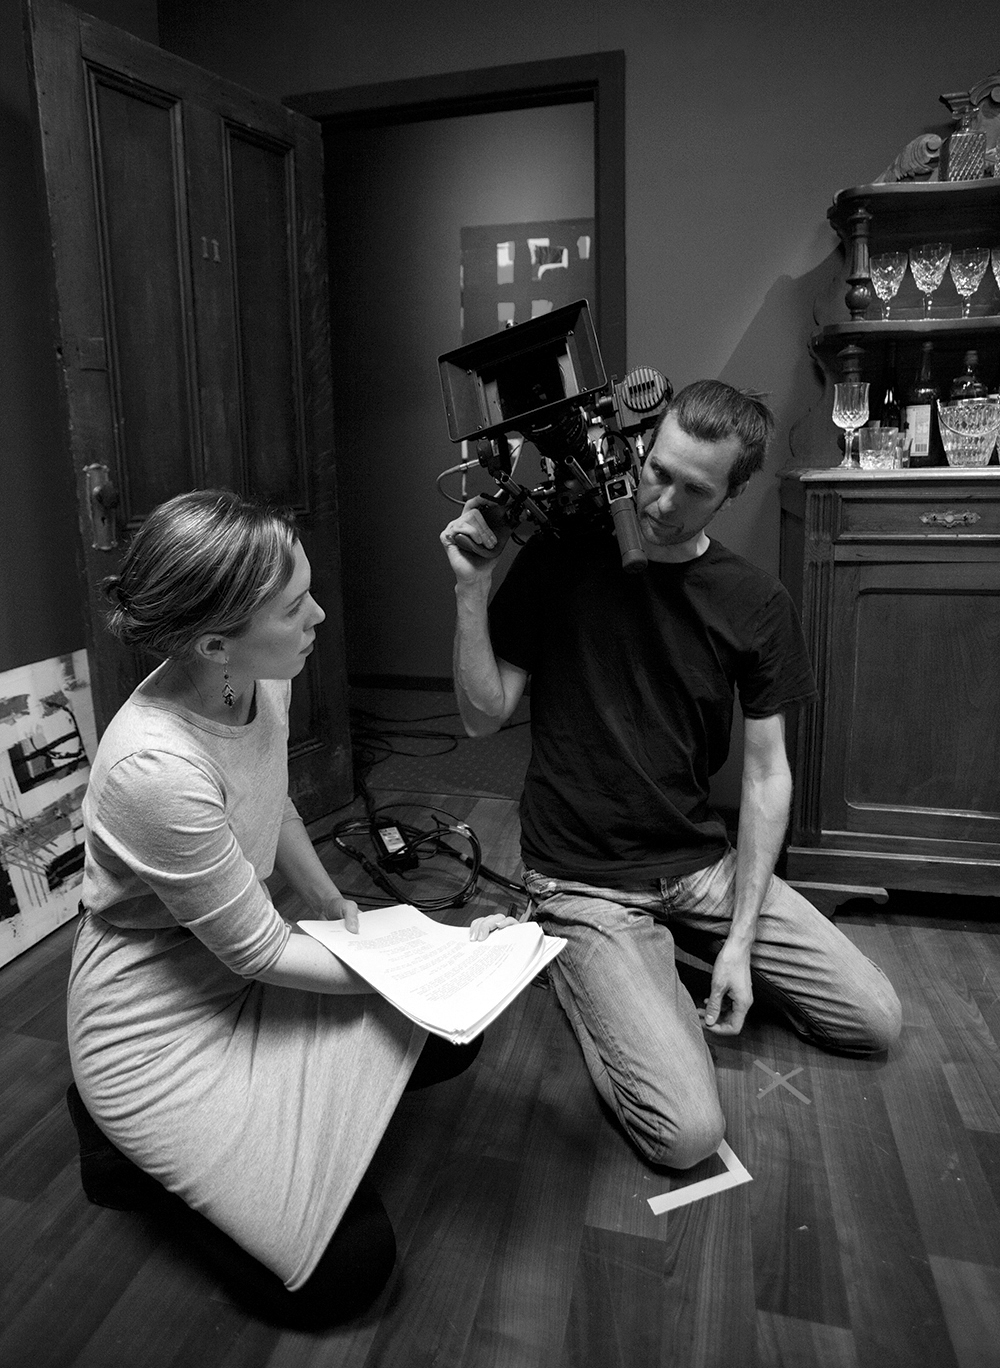 Director Siobhán Costigan and Cinematographer Kent Marcus   on the set of   Intersection  .  Photo by Maneesha Walsh. © AFTRS